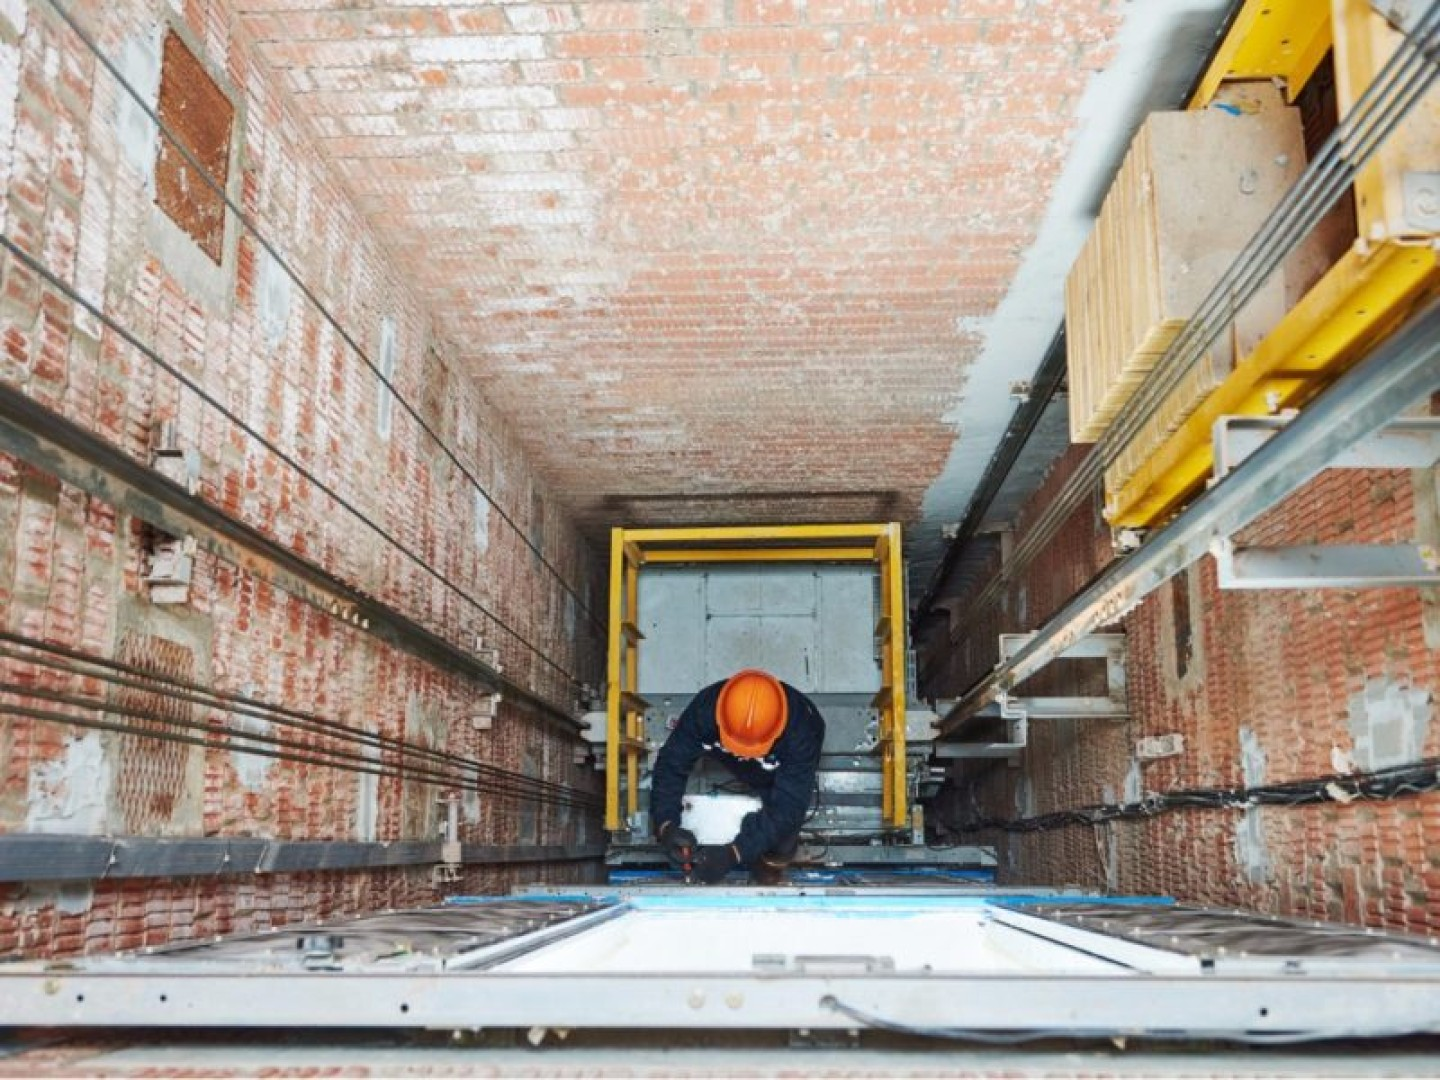 Lift Inspections and Lift Audits